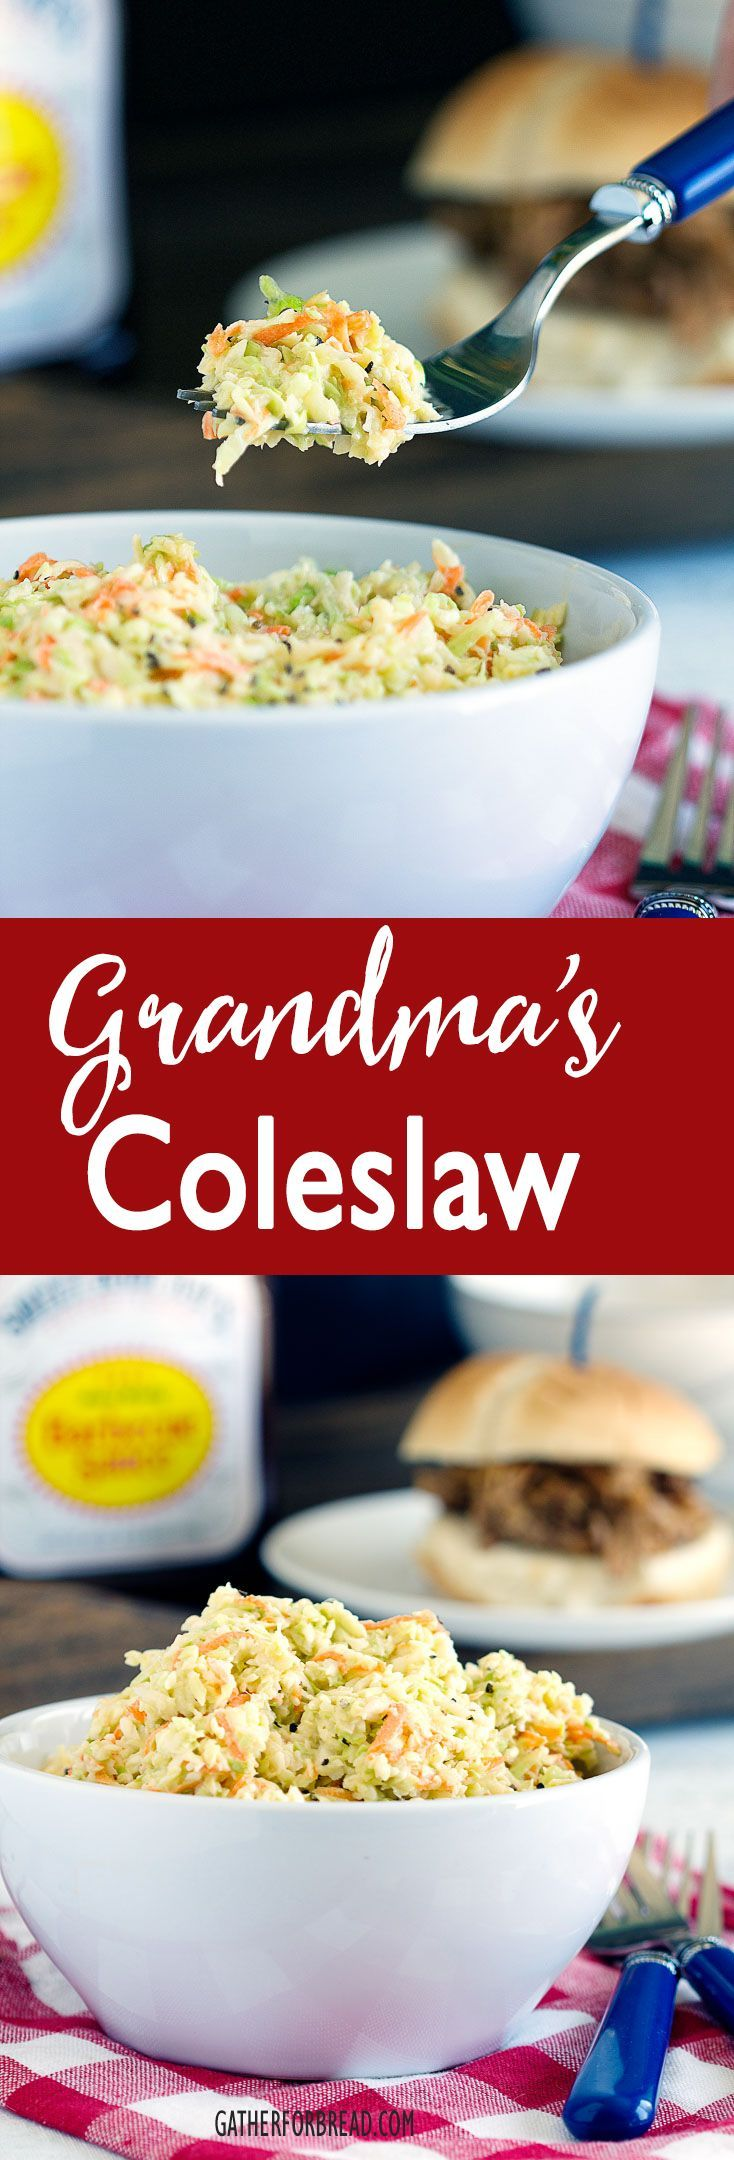 Grandmas Coleslaw - Simple, creamy, old fashioned cole slaw. A picnic favorite! | gatherforbread.com